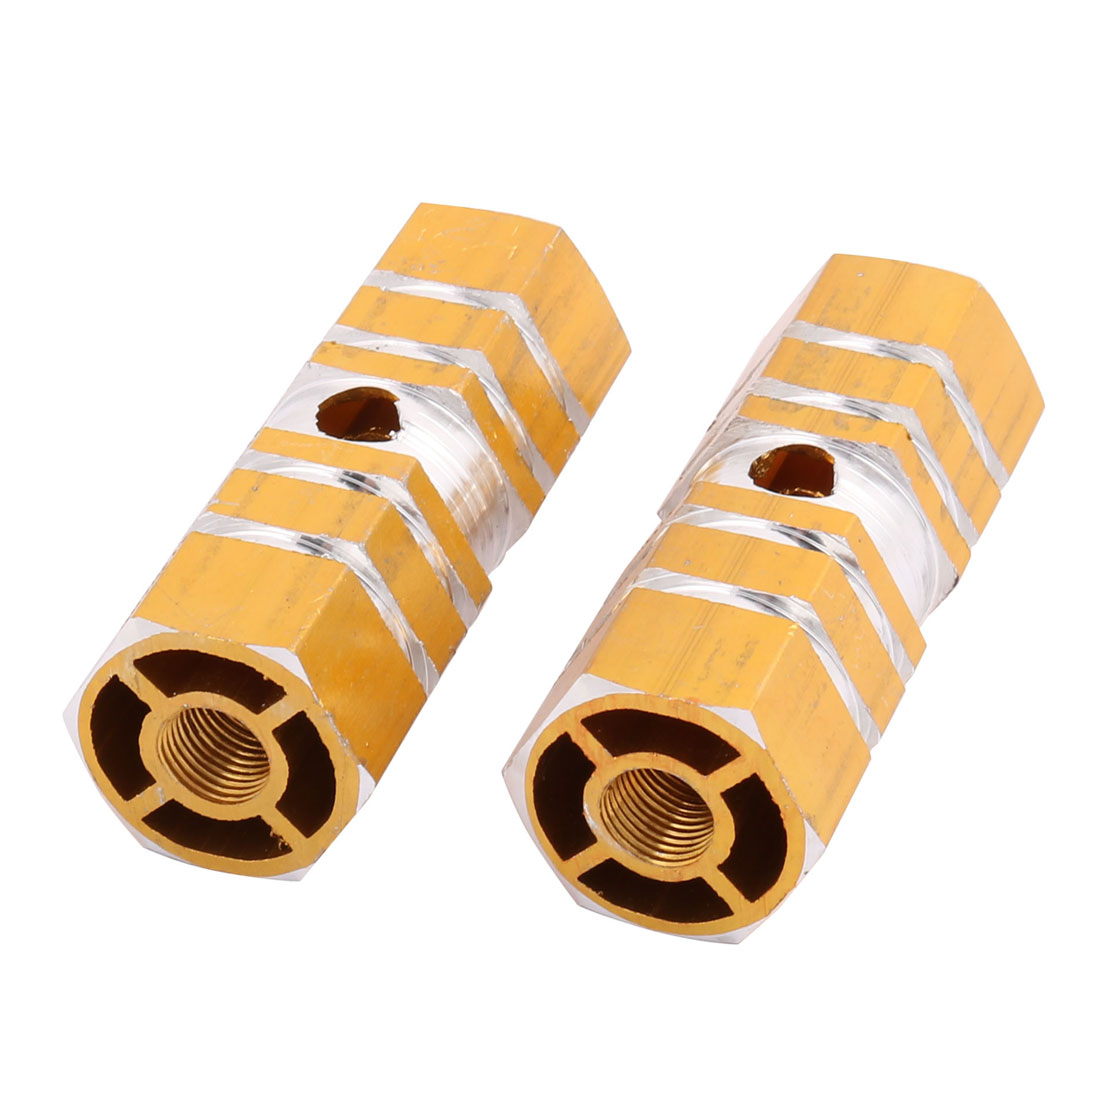 Pair 9mm Dia Female Thread Aluminum Alloy Foot Pegs Gold for Bicycle Cycling